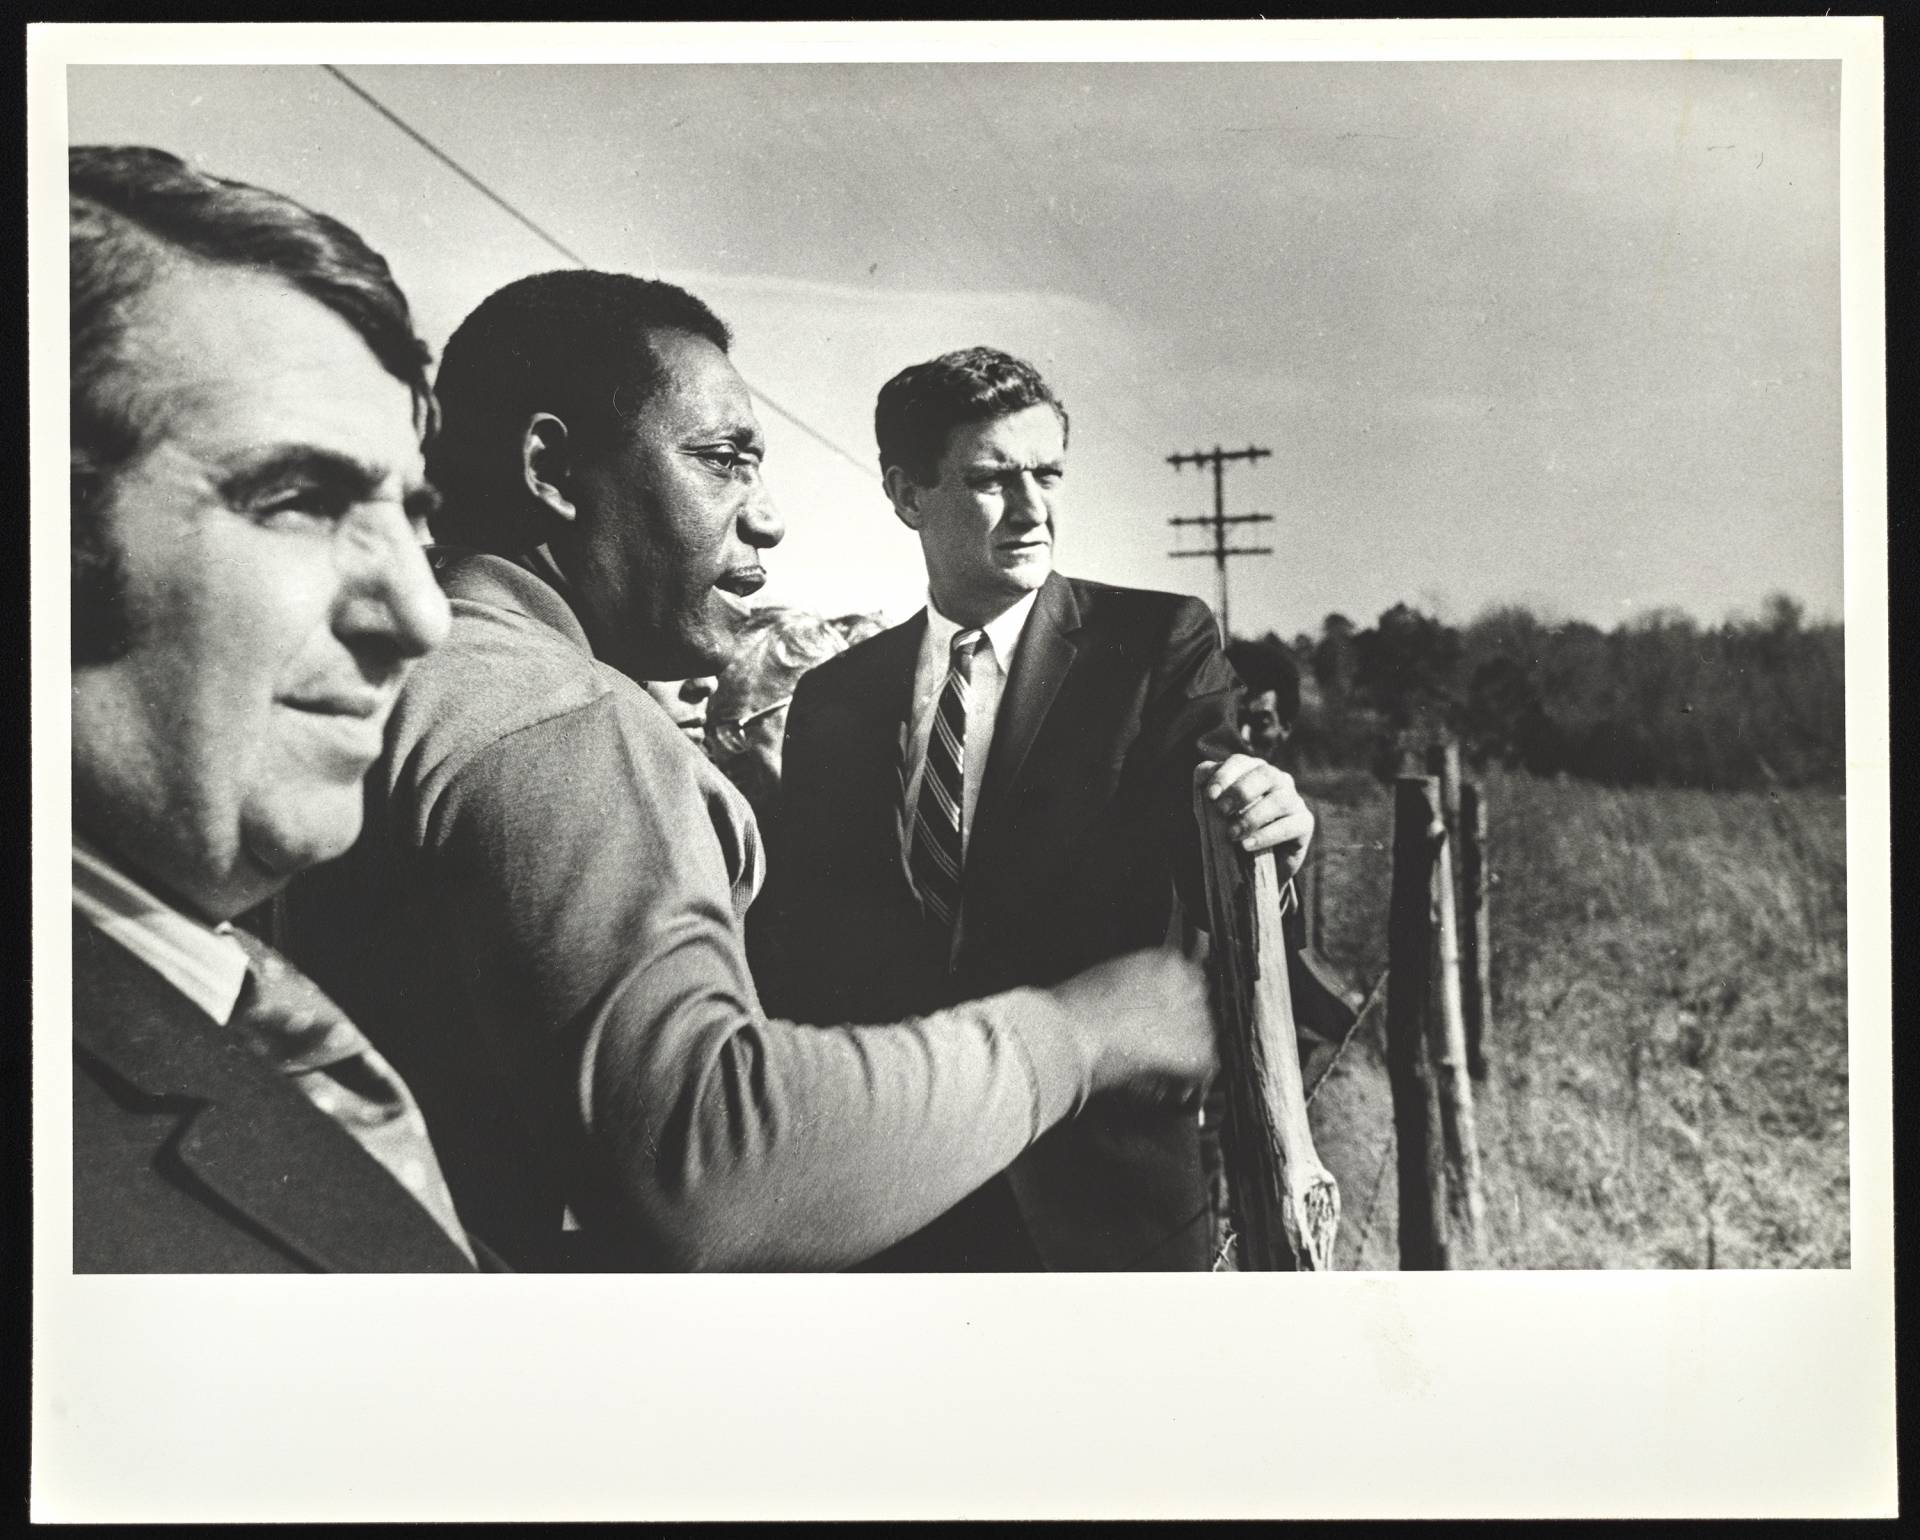 John Doer stands with 2 of his fellow Freedom Riders